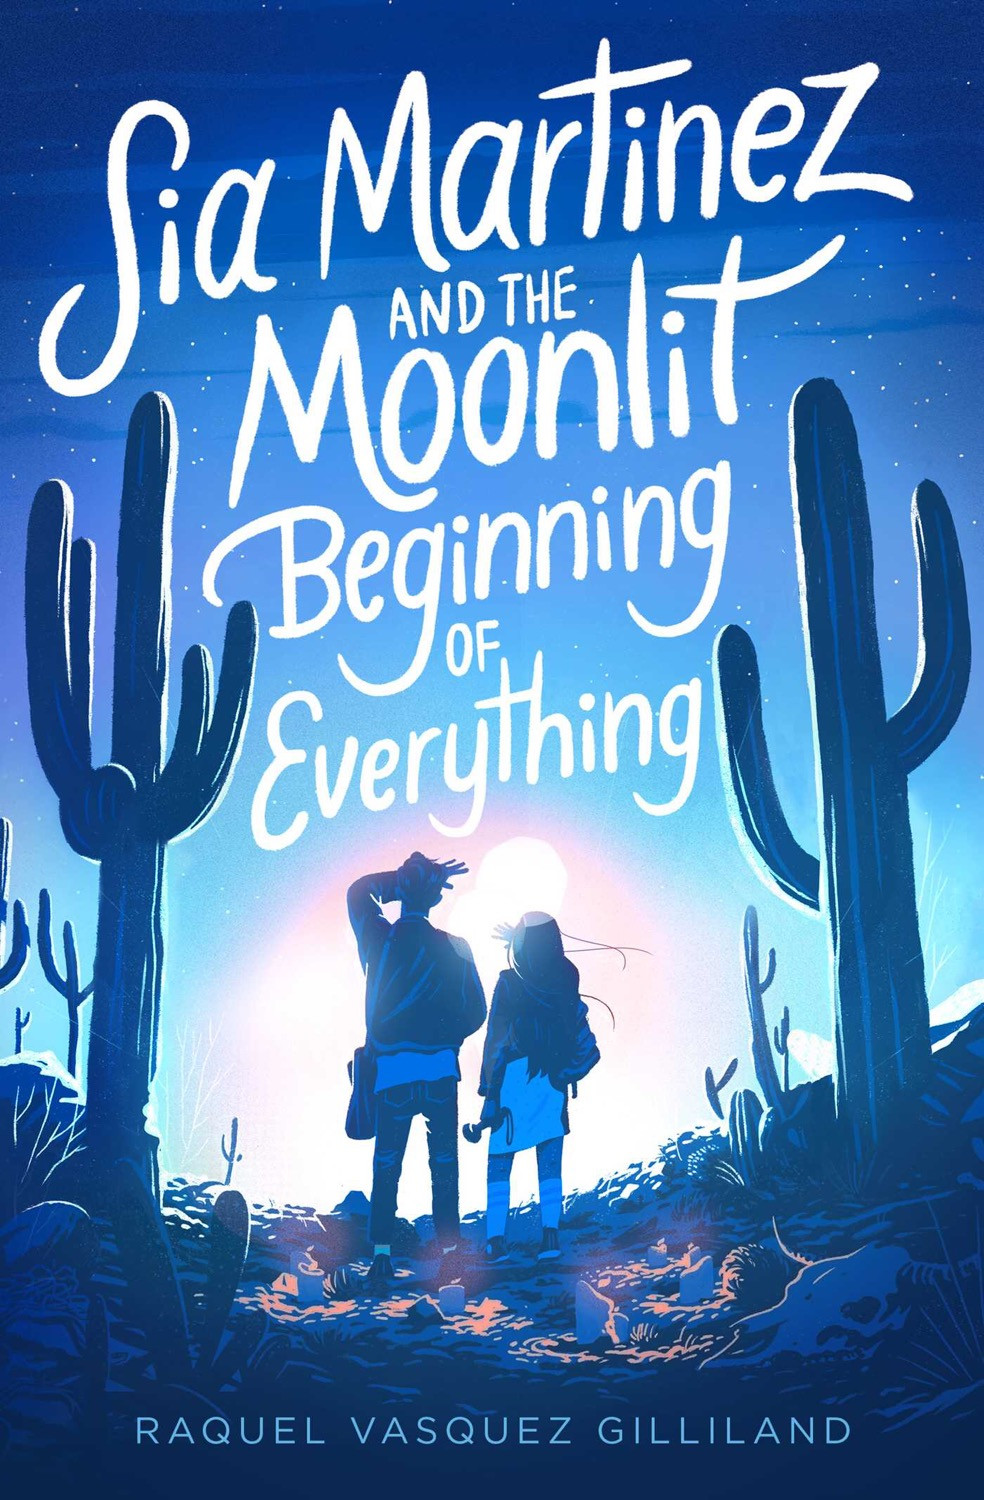 Sia Martinez and the Moonlit Beginning of Everything by Raquel Vasquez Gilliland - Book Cover | 13 YA Books Out In August 2020